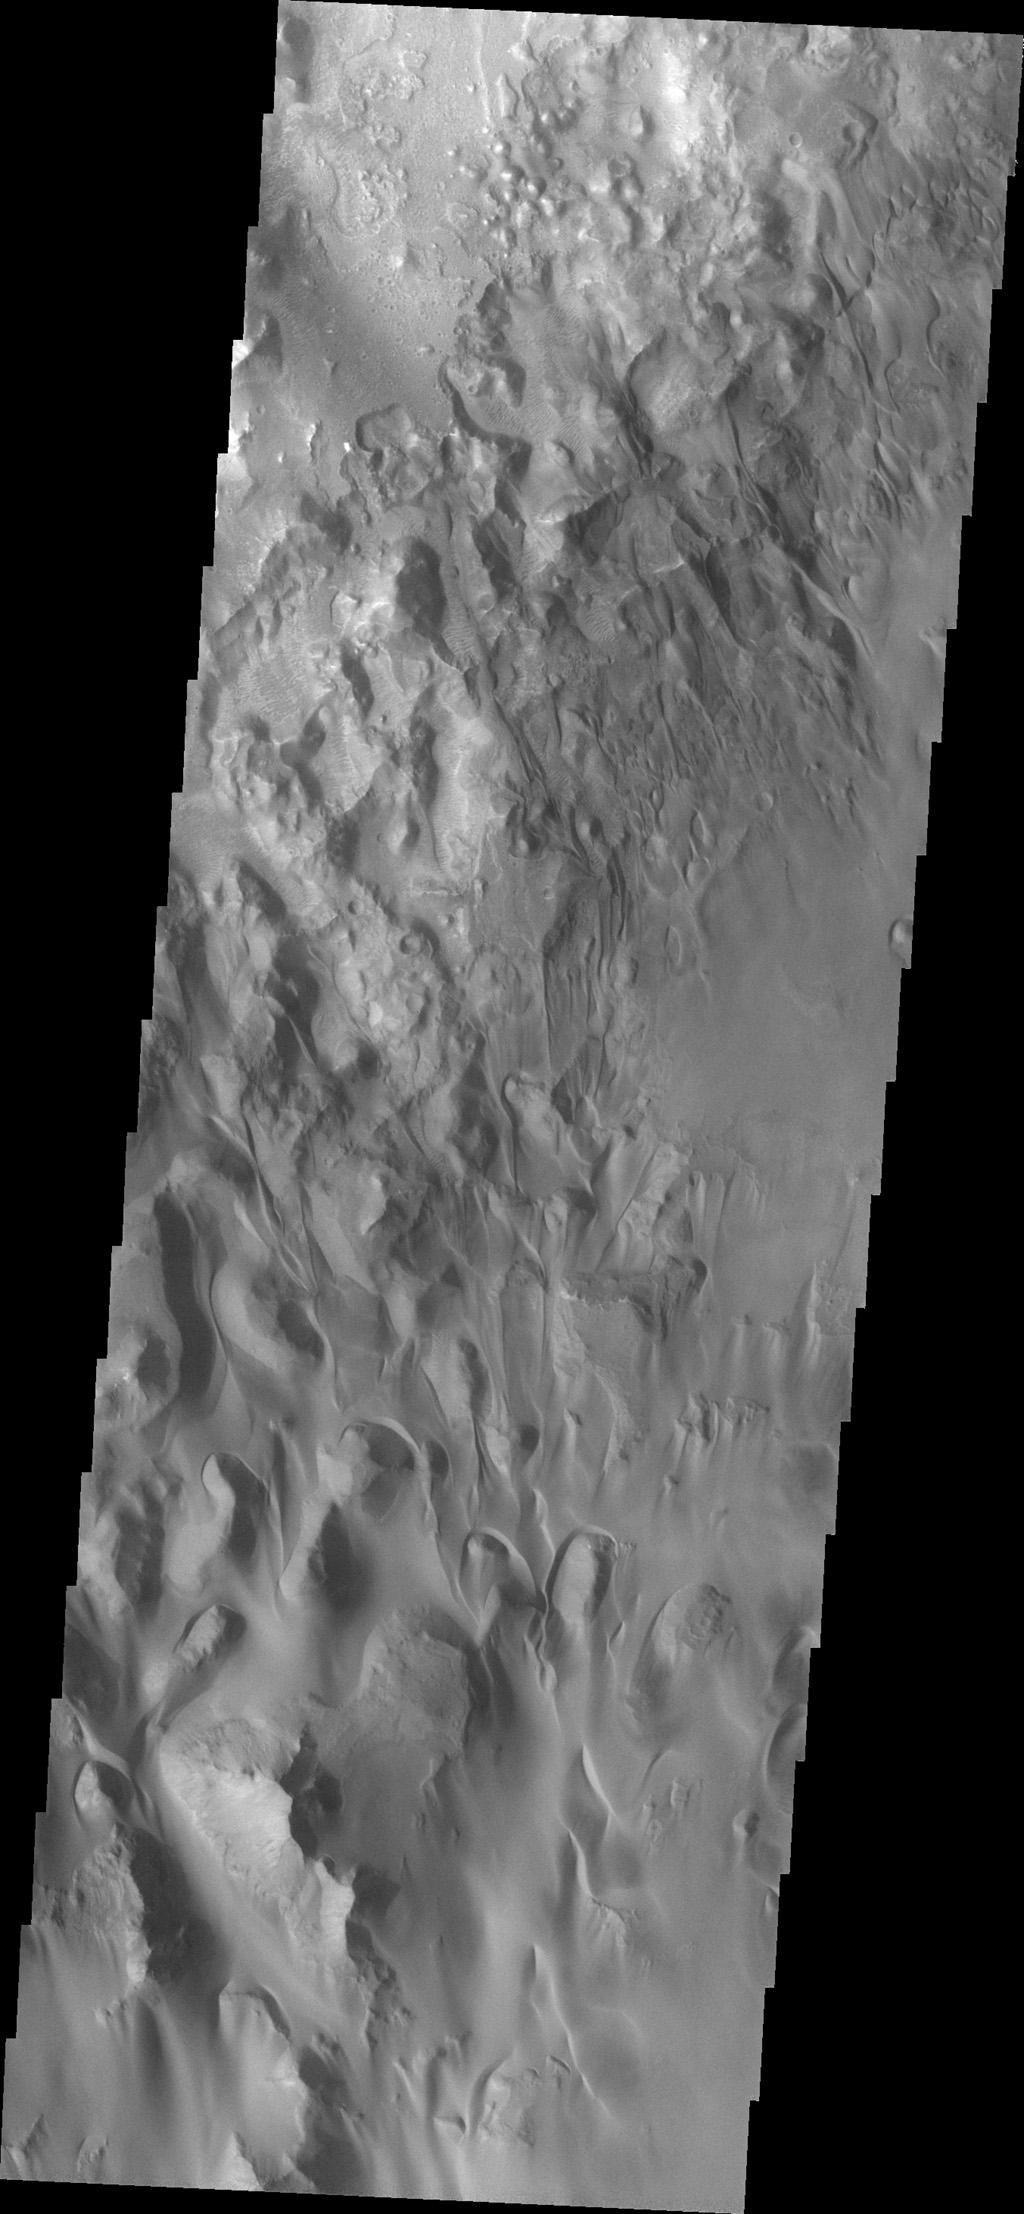 Space Images | Juventae Chasma